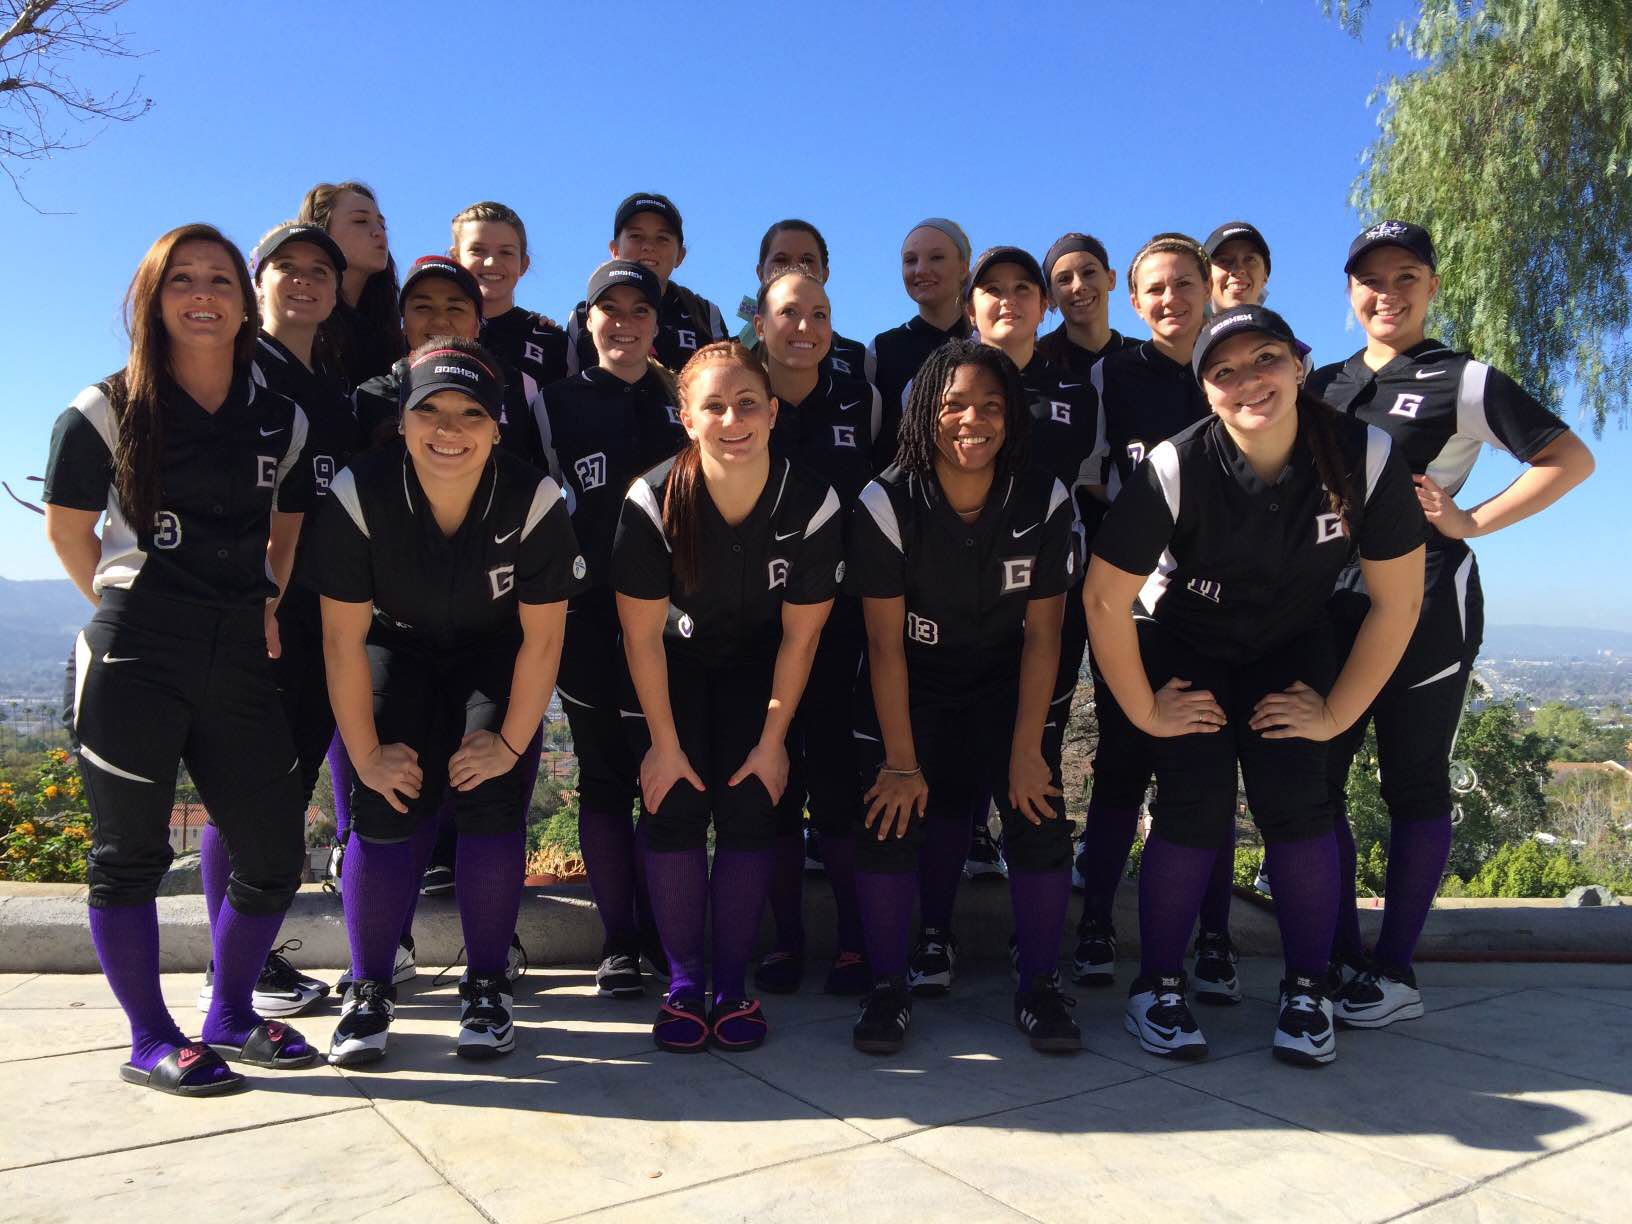 team picture of softball in California